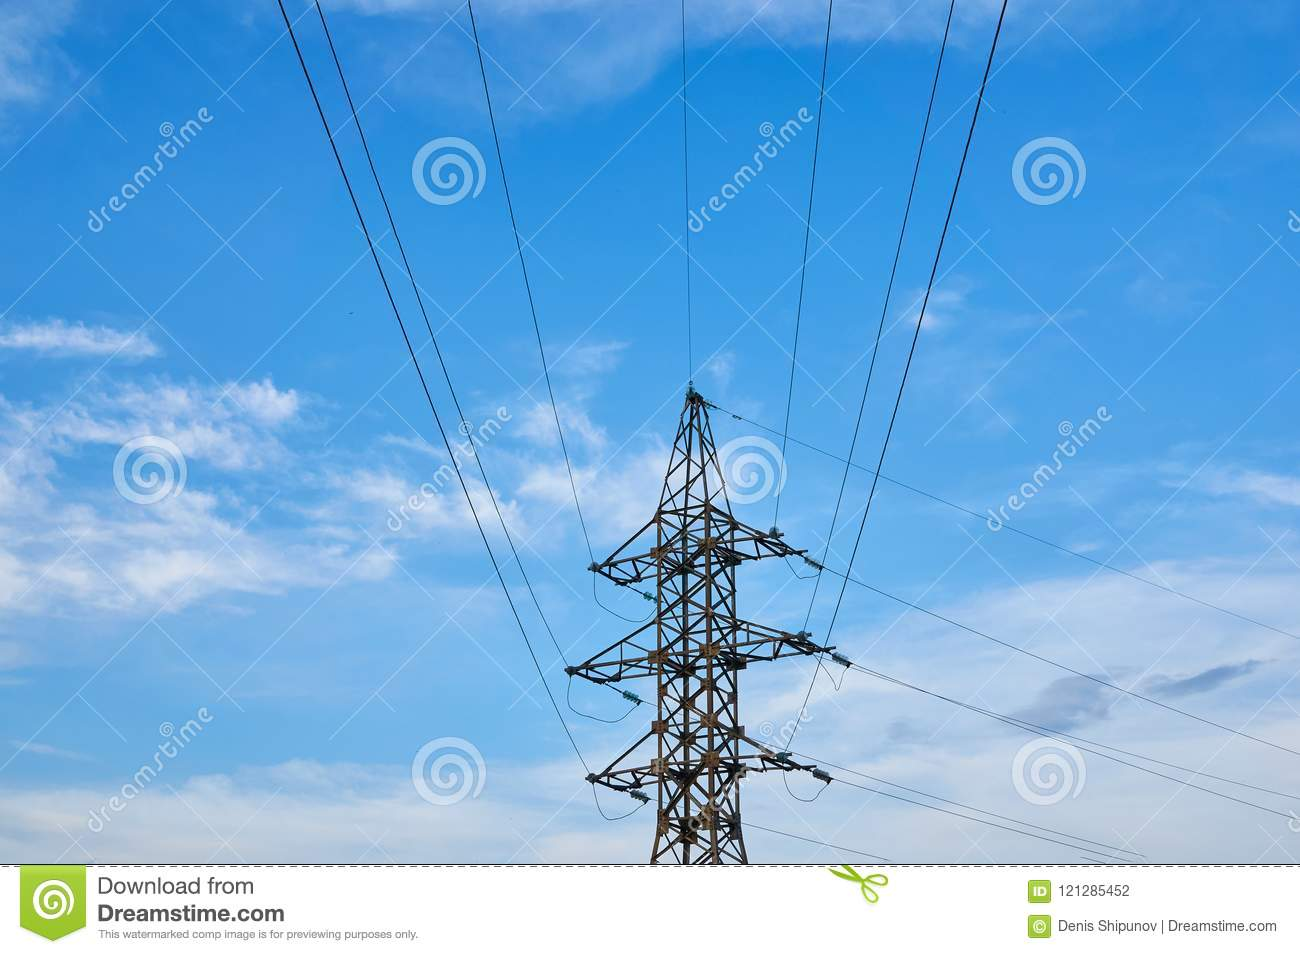 A line of high-voltage cables against a blue sky with clouds.